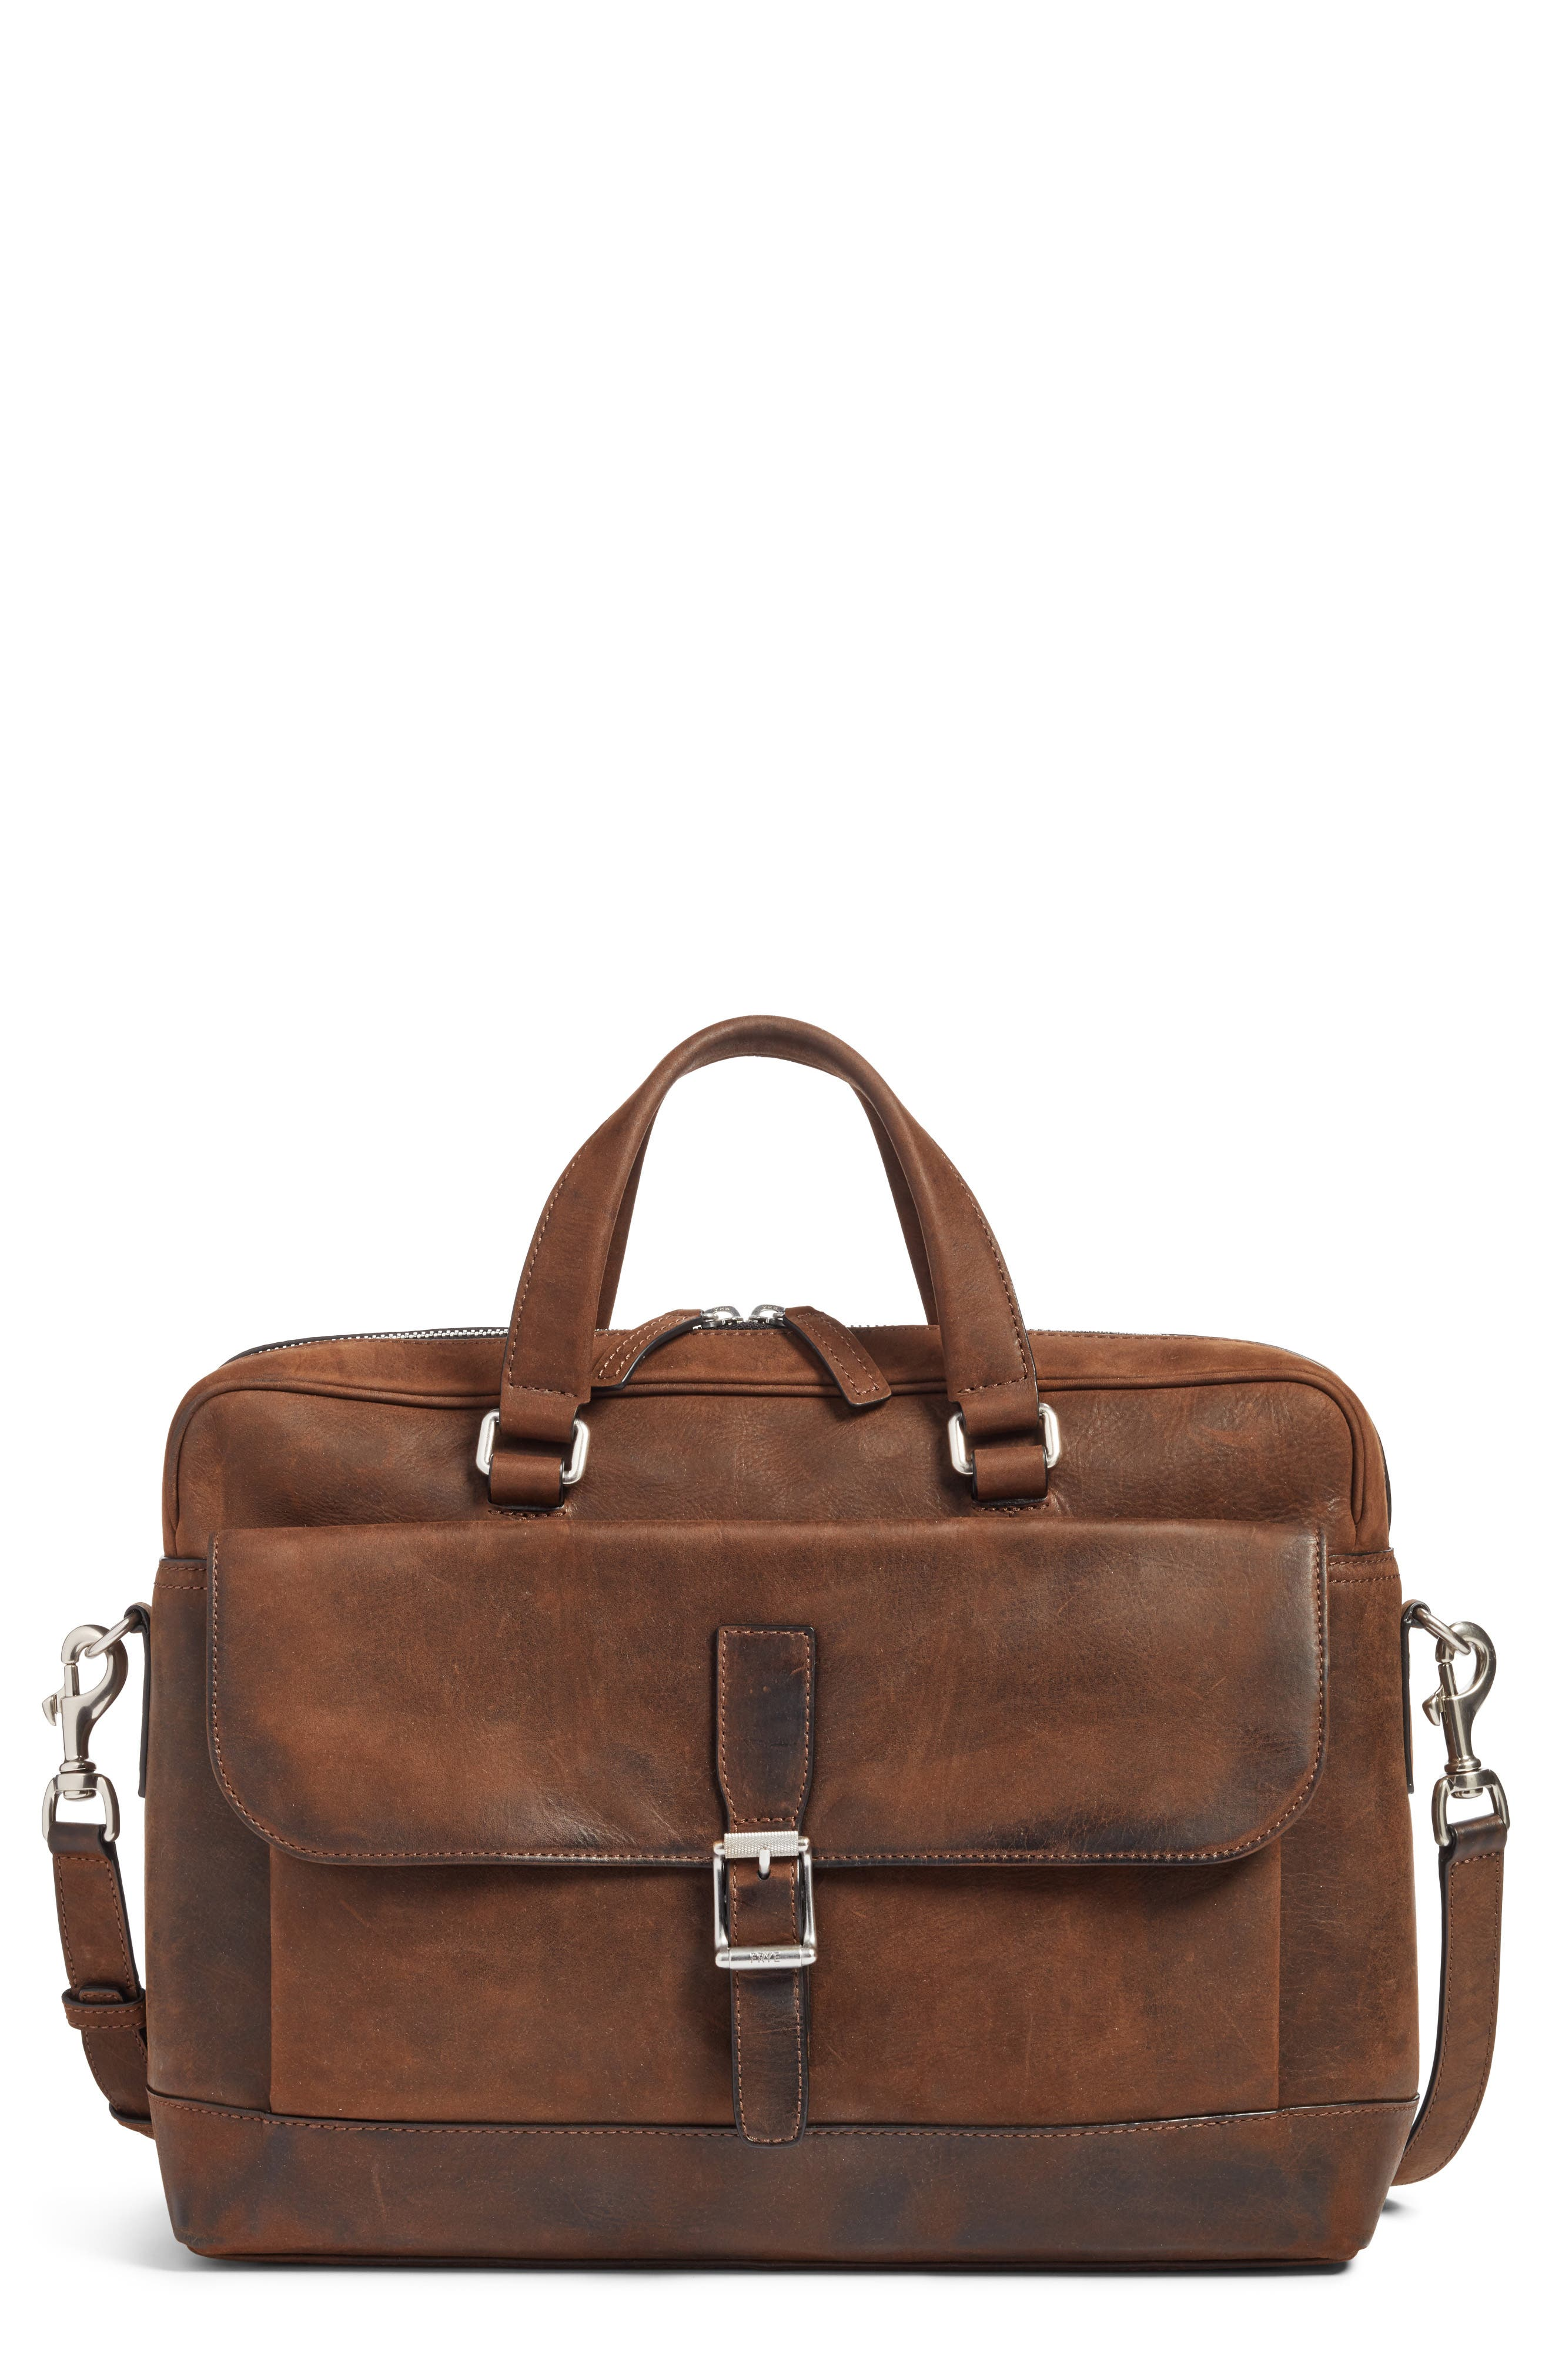 FRYE, Oliver Leather Briefcase, Main thumbnail 1, color, DARK BROWN